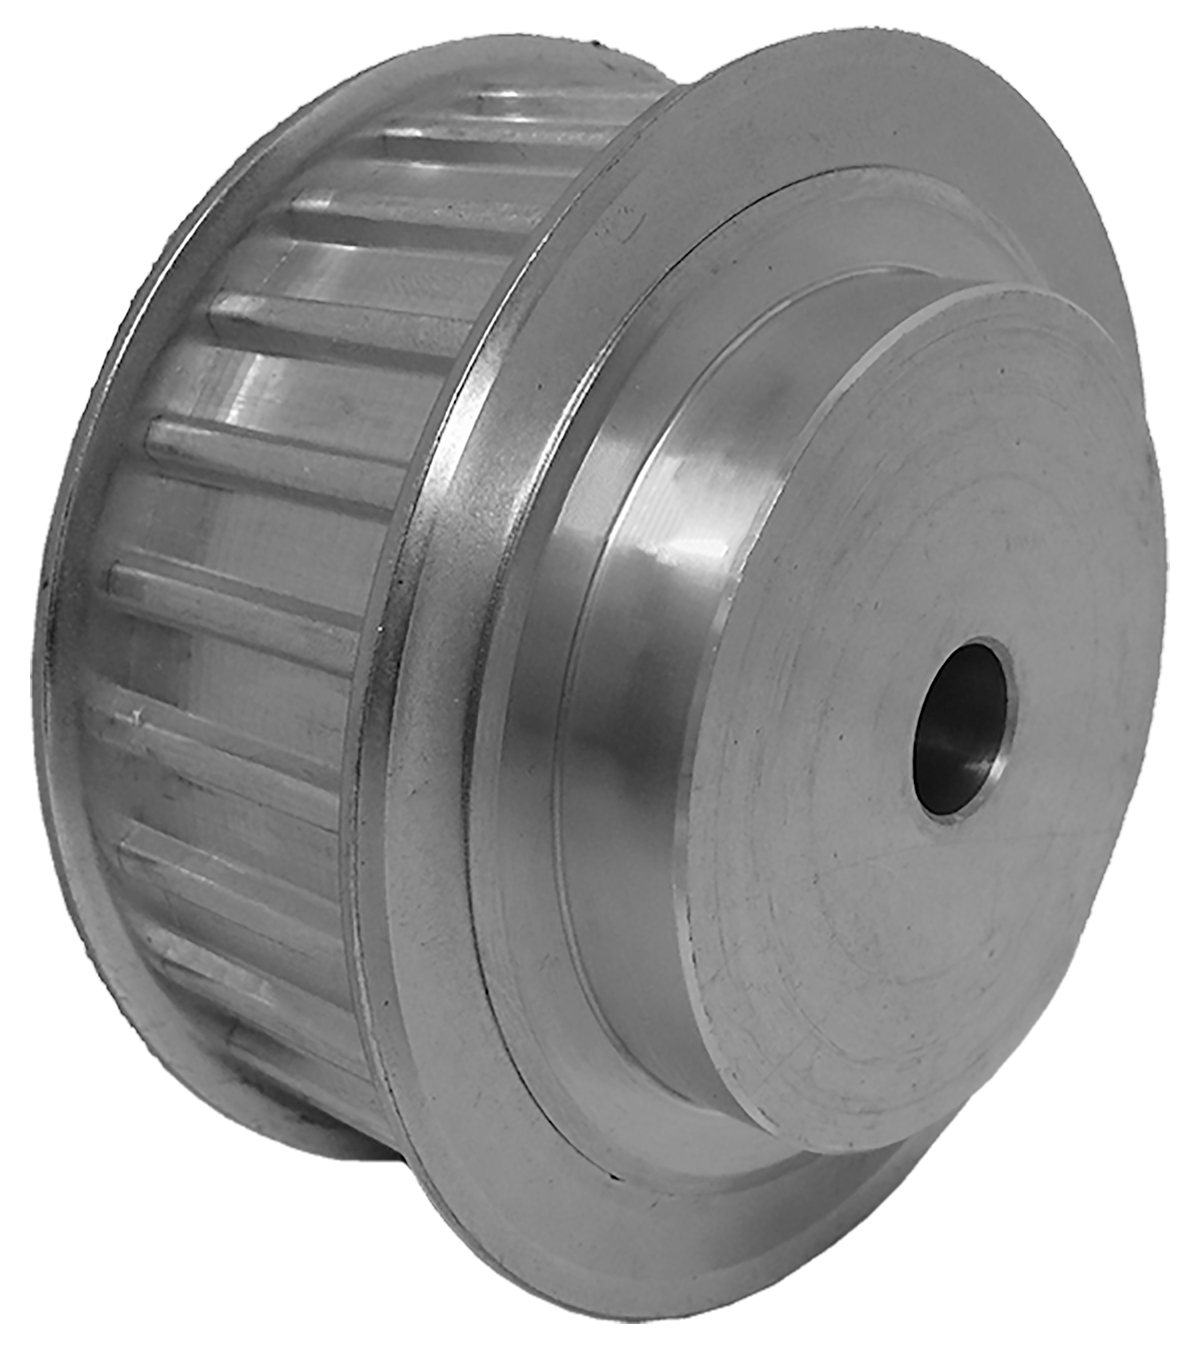 42AT10/27-2 - Aluminum Metric Pulleys